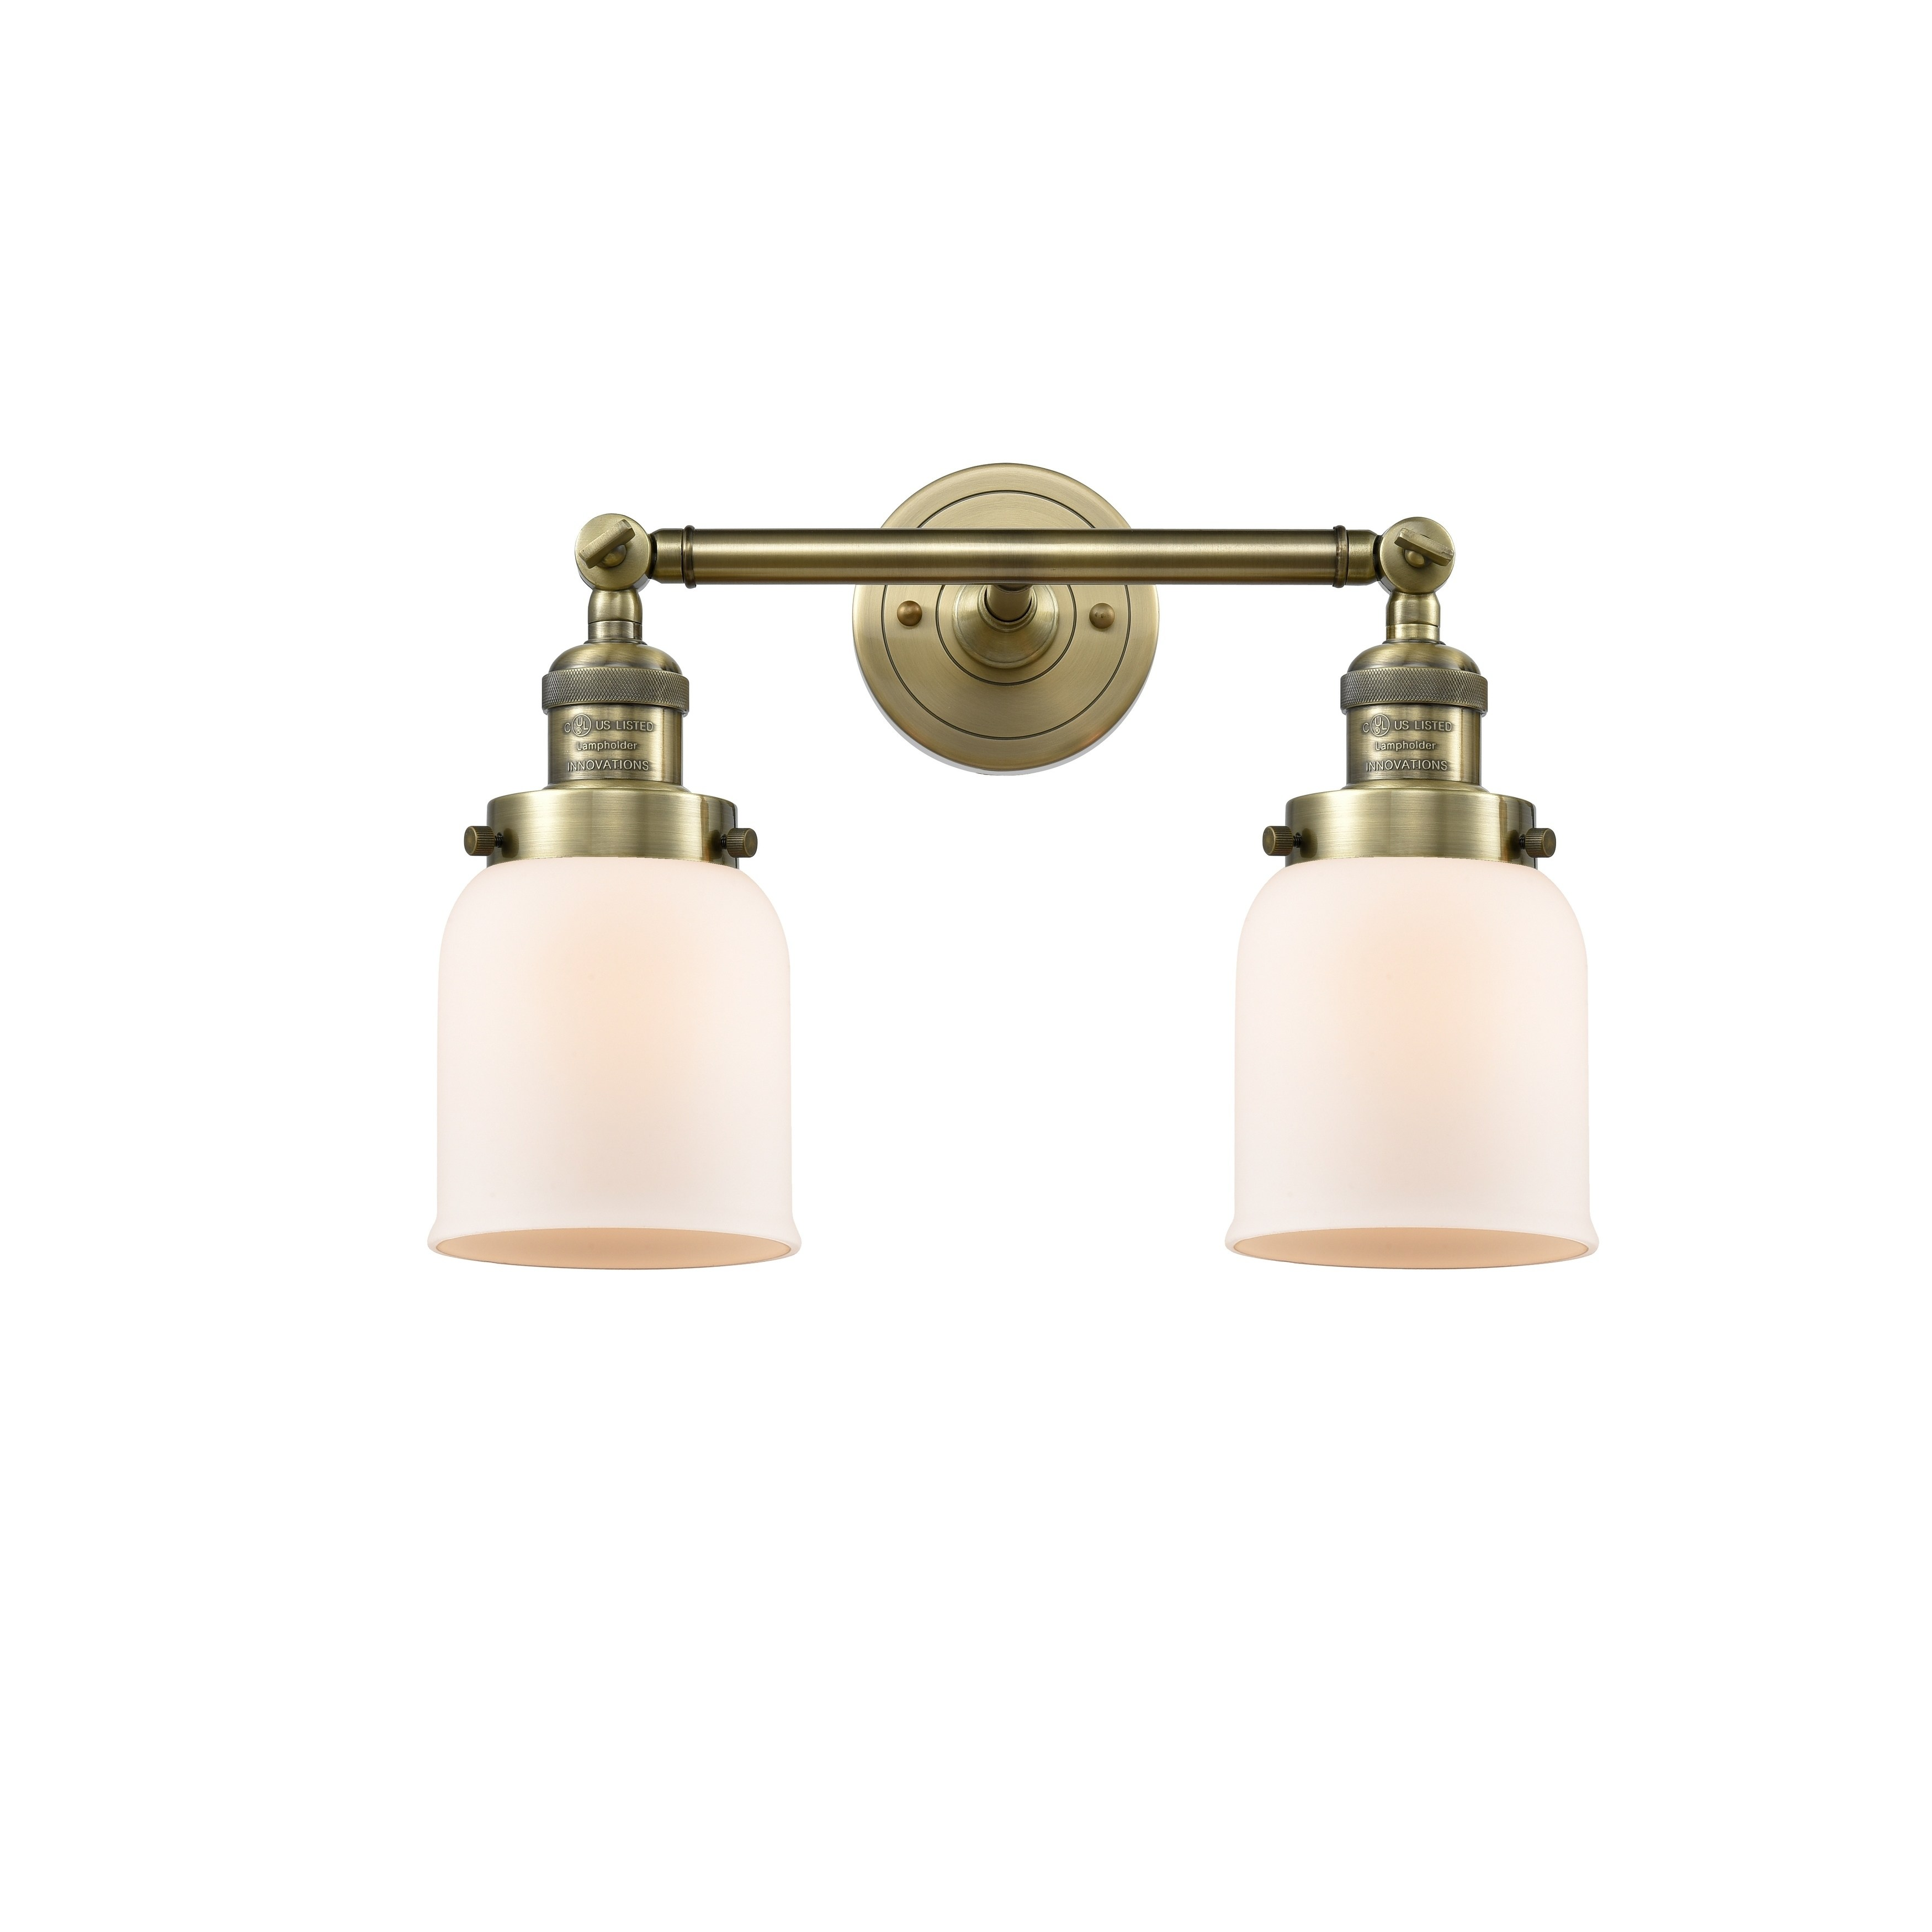 Innovations Lighting Innovations Lighting Small Bell 1 Light Sconce Bulbs Included Vintage Filament Bulb Included Led Dimmable Silver Me Brass Bathroom Fixtures Bathroom Fixtures Sconces